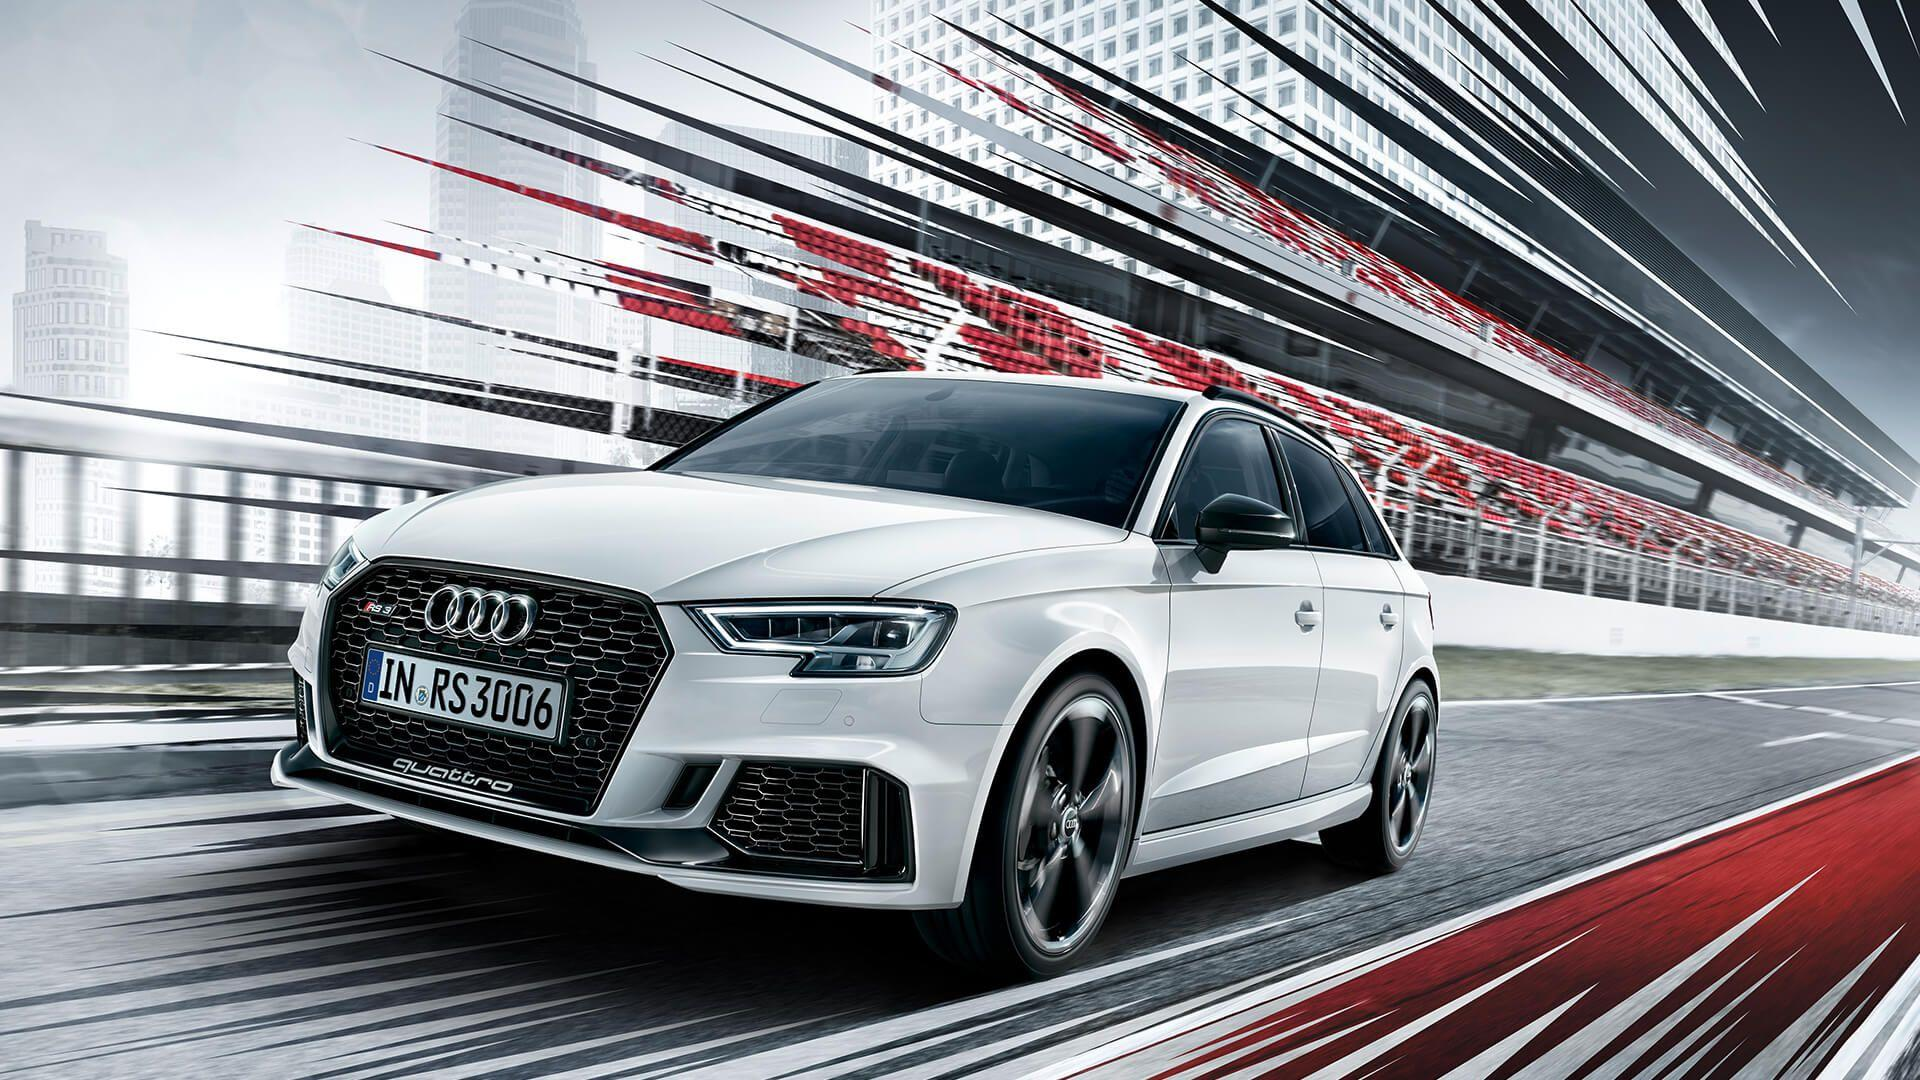 New RS 3 Sportback - Gallery | Audi UK